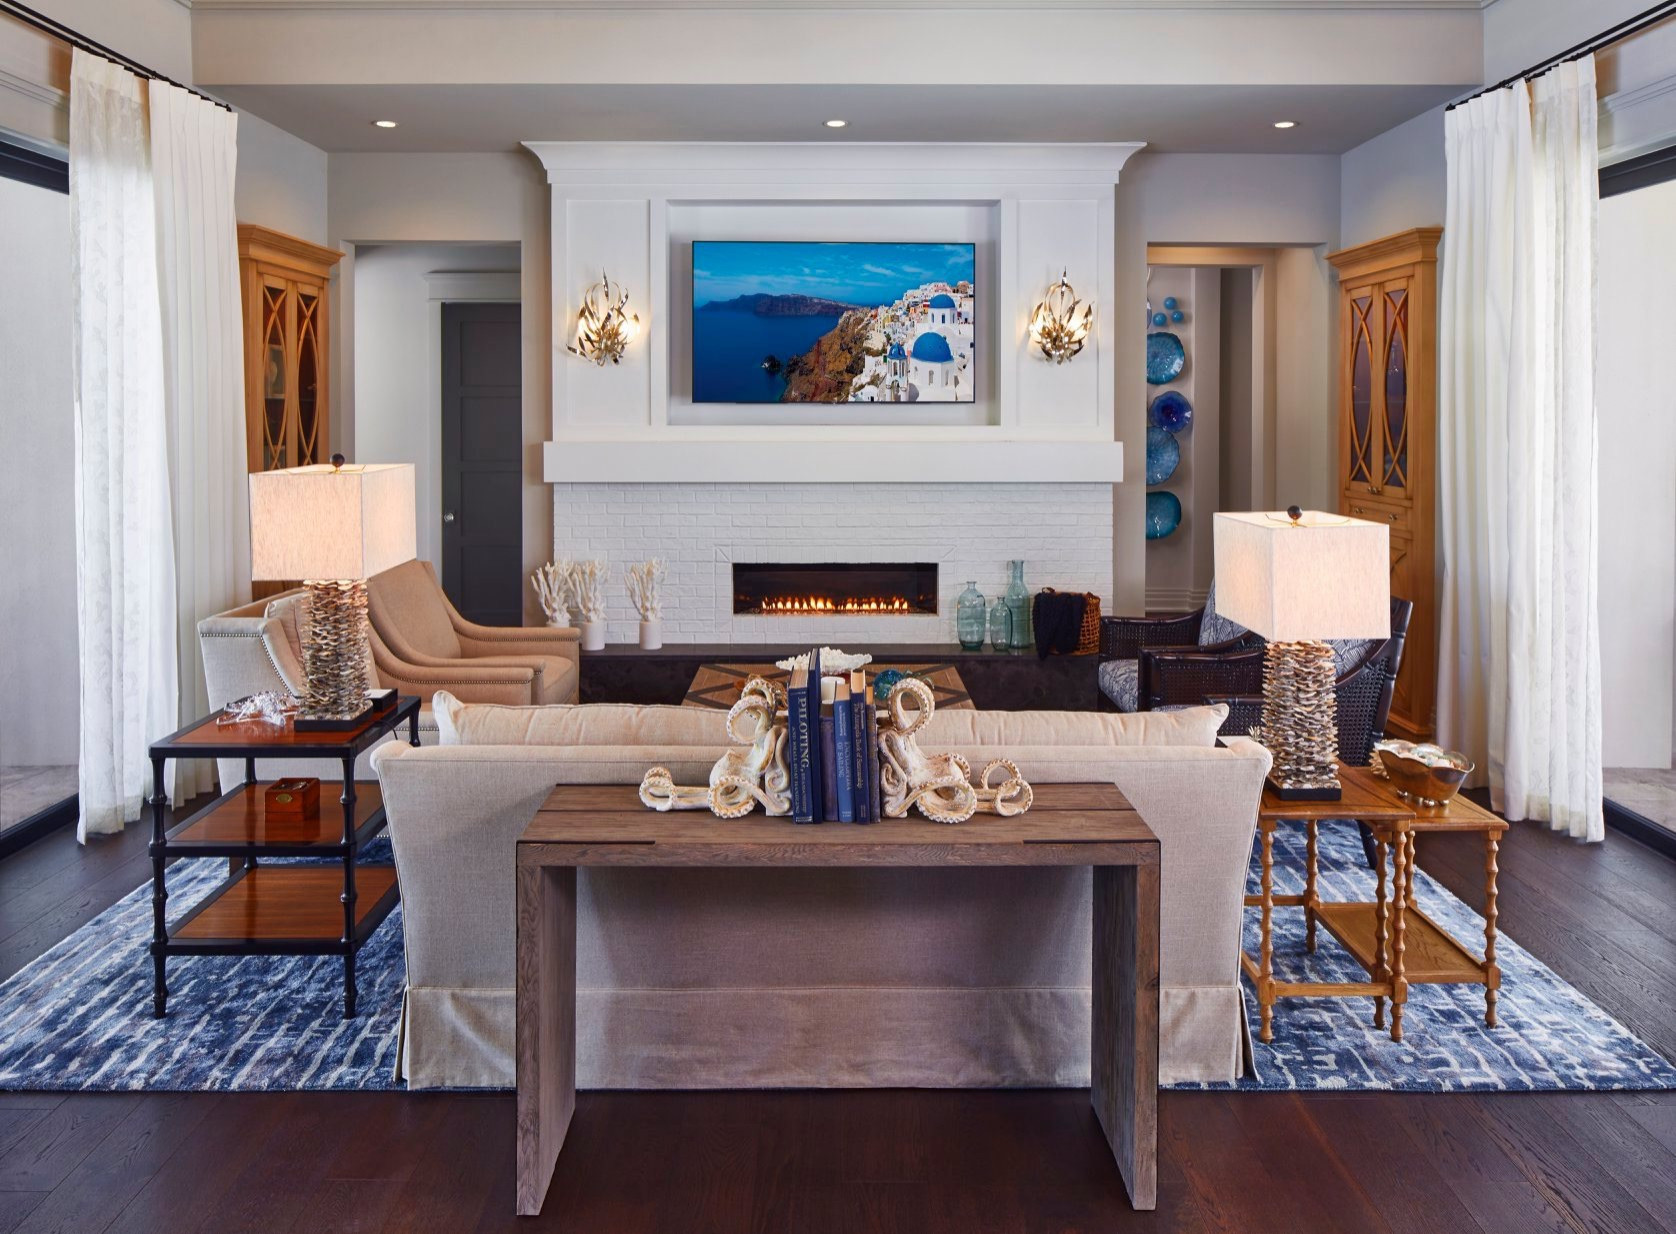 Living Room, entertainment room, library cabinetry by Amoroso Cabinets